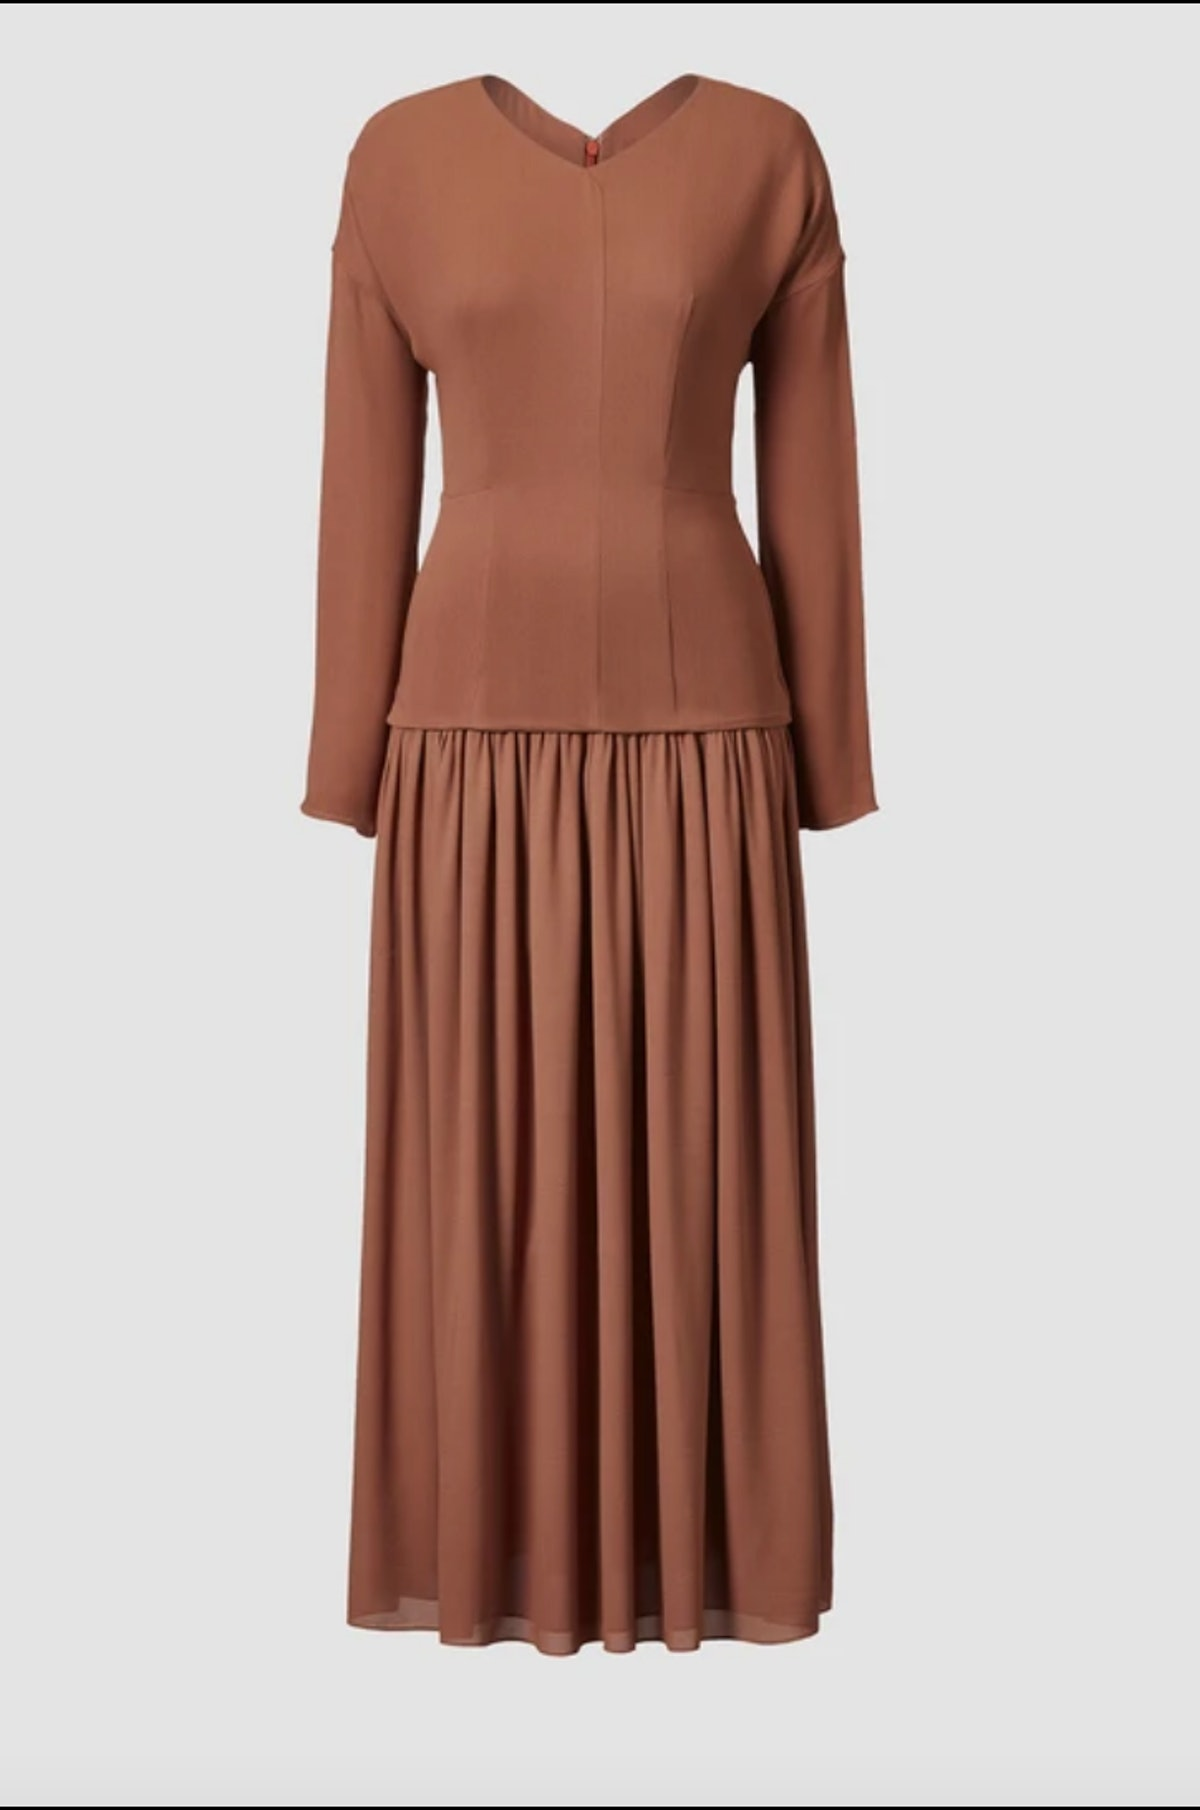 TOVE's midi dress with long sleeves in the color rust.